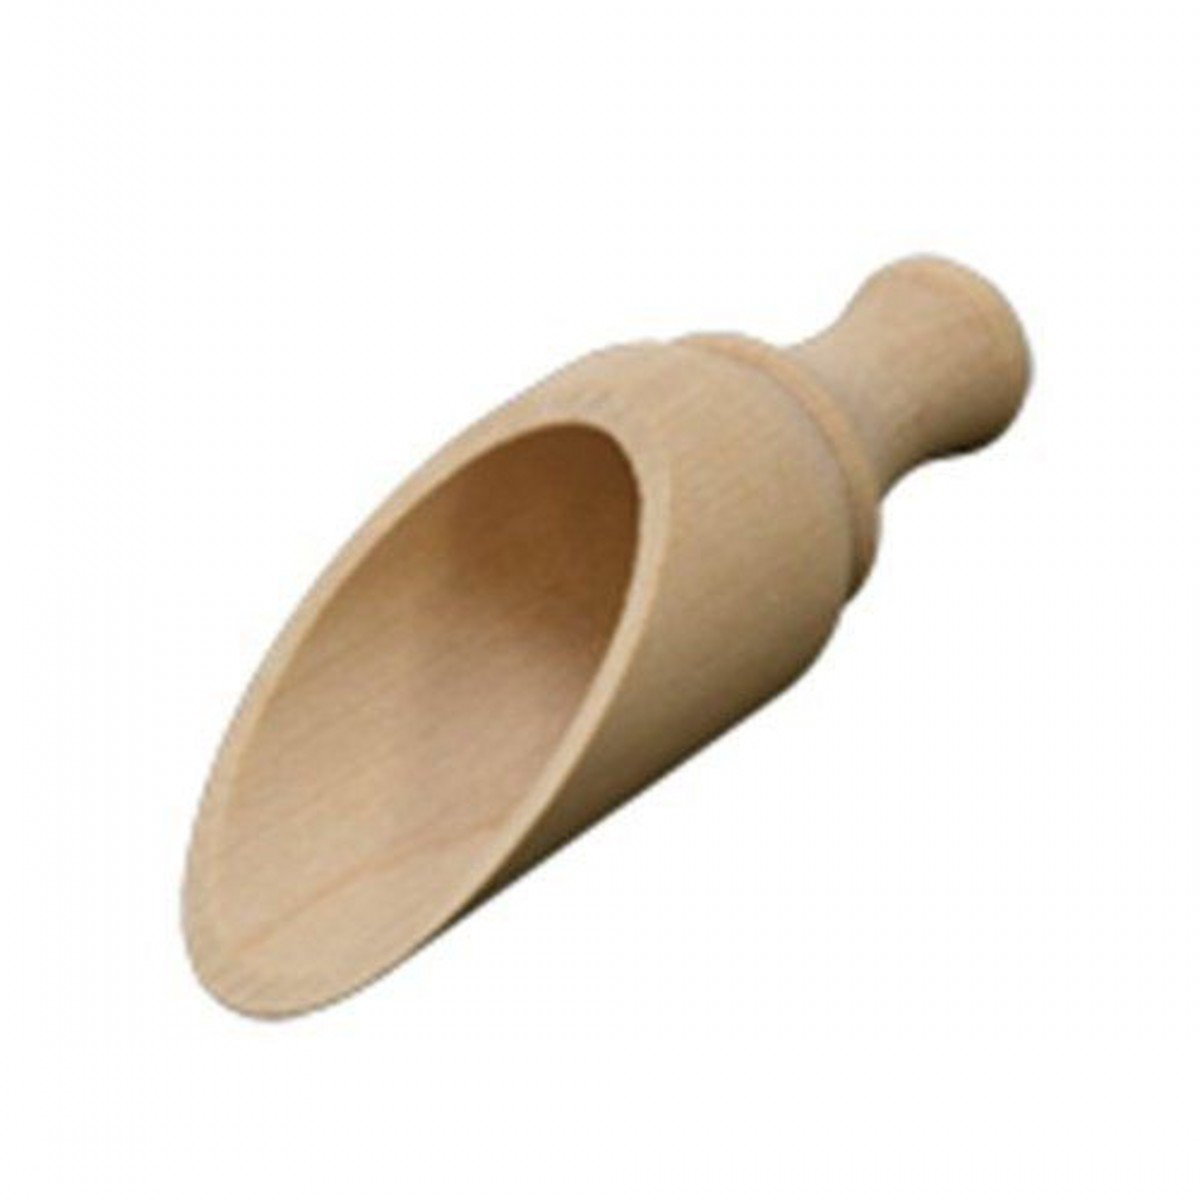 100X Dress My Cupcake Rustic Round Wood Scoop, 3.5-Inch by Neutral